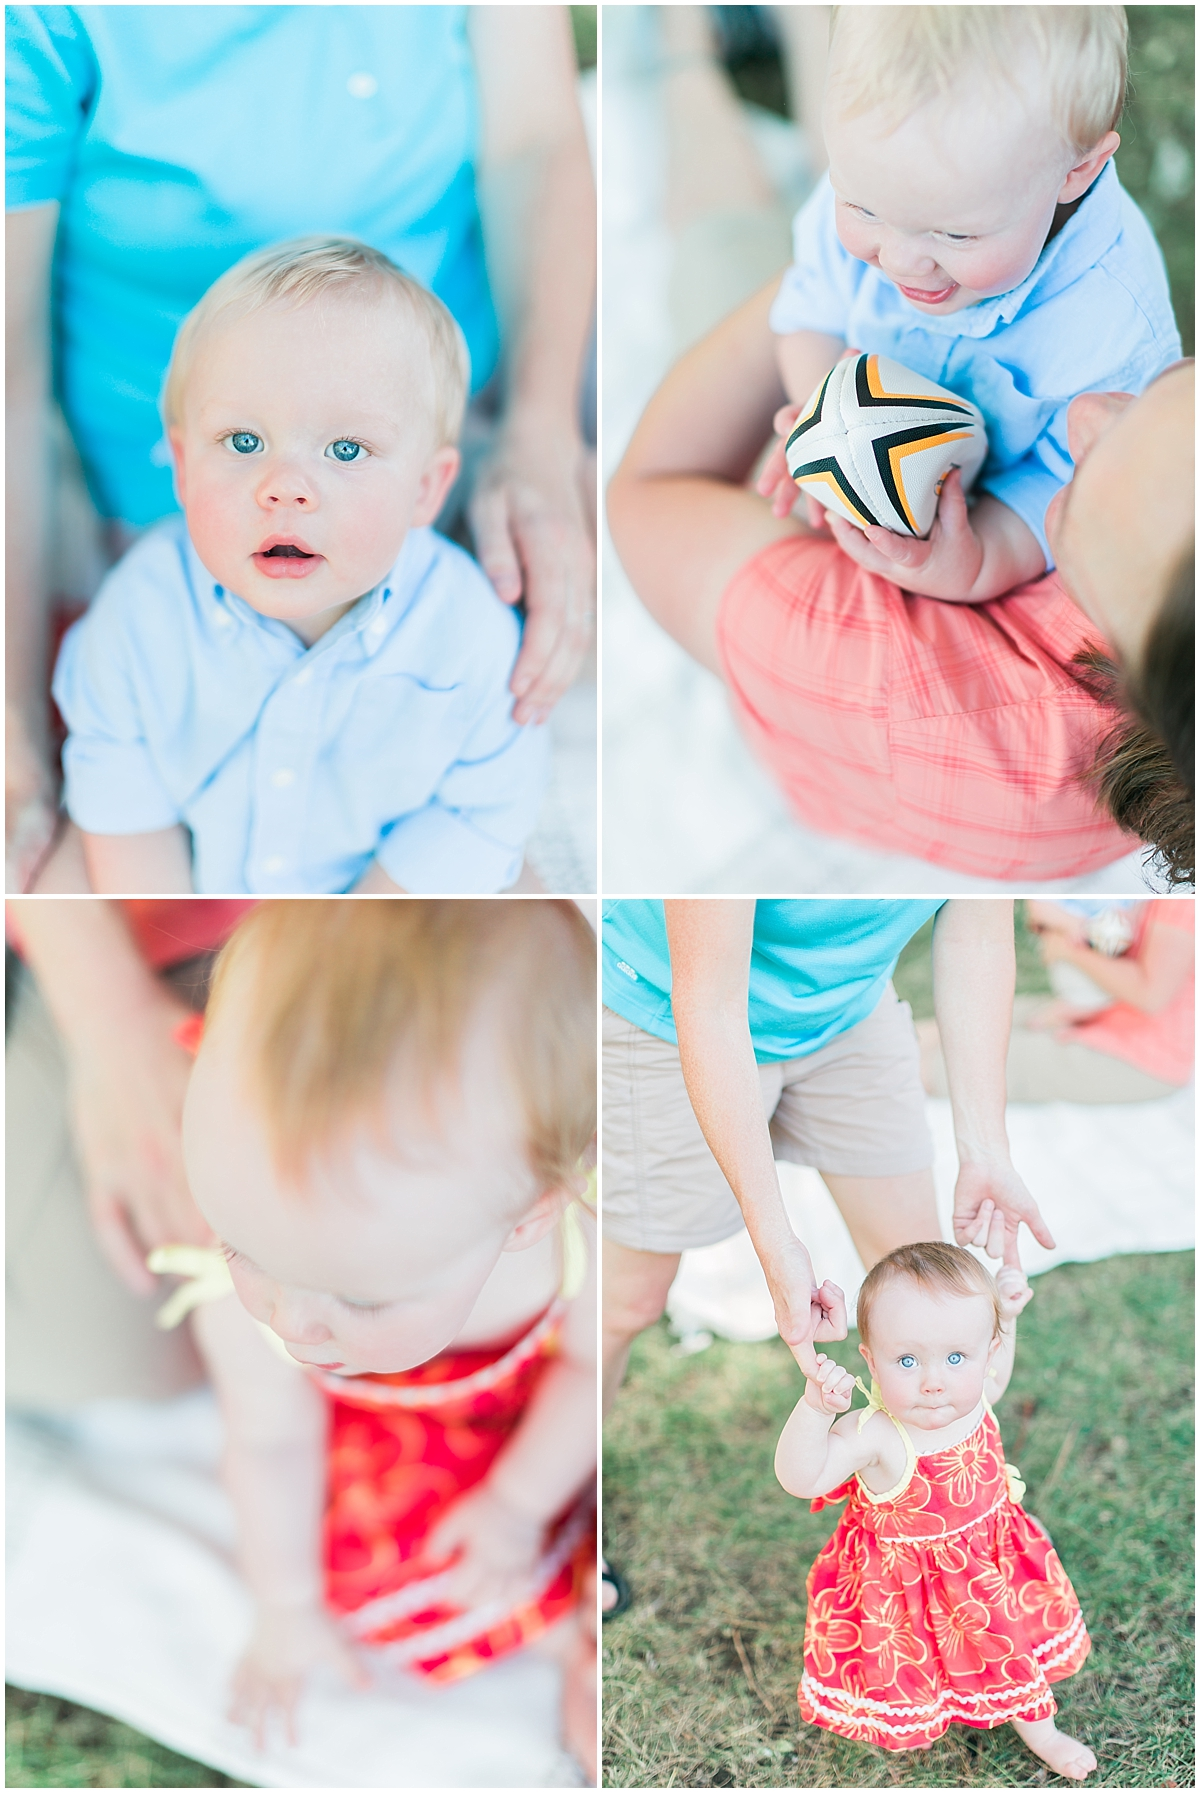 One year old photo session